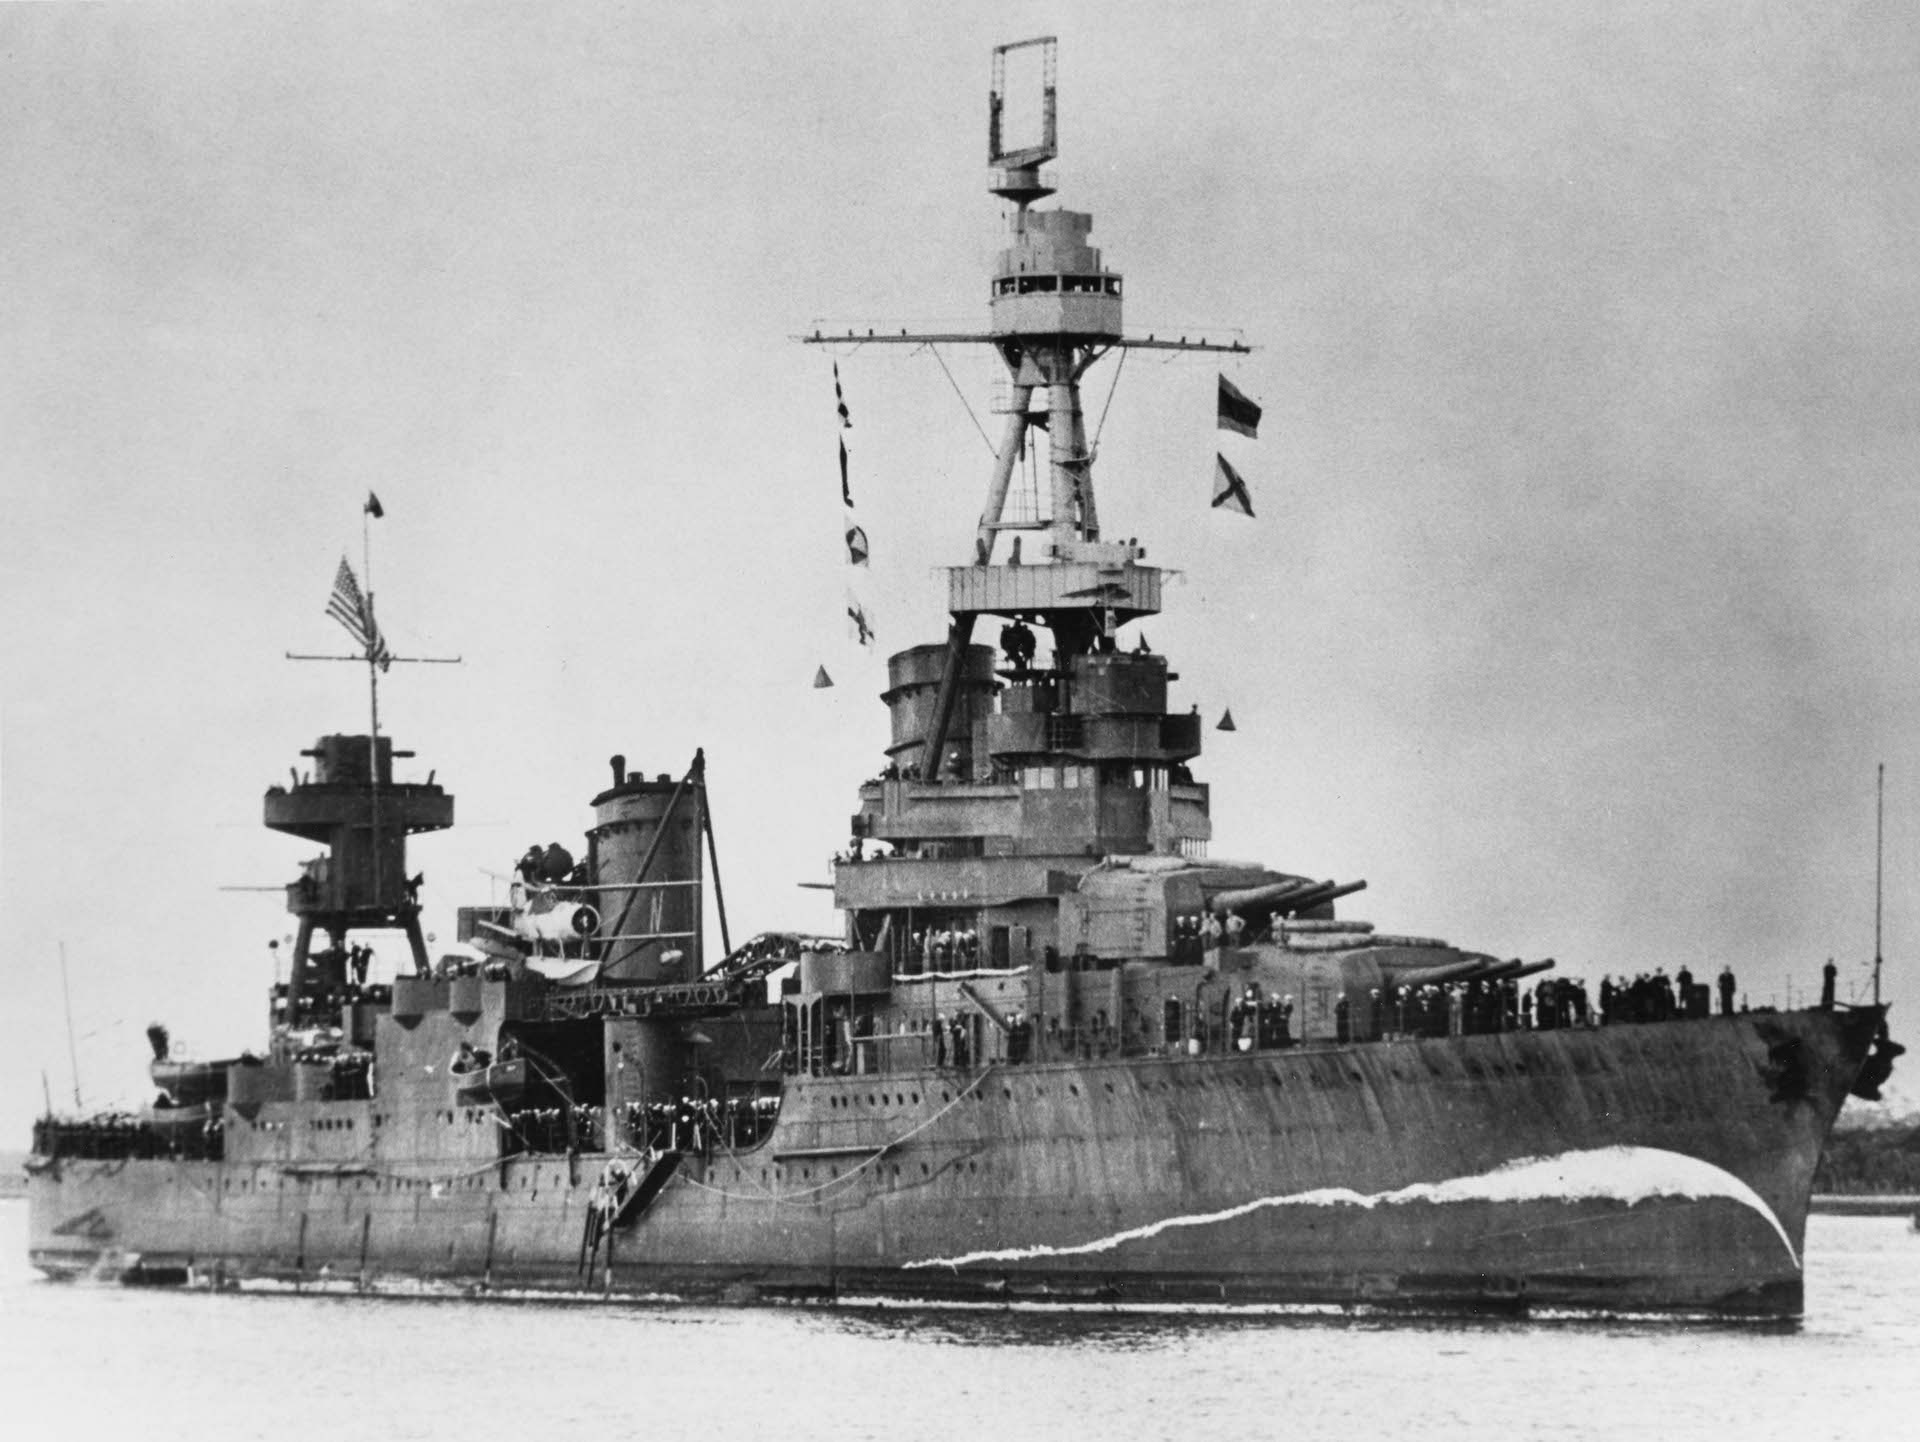 An old black and white photograph of the USS Northampton, where Howard served.